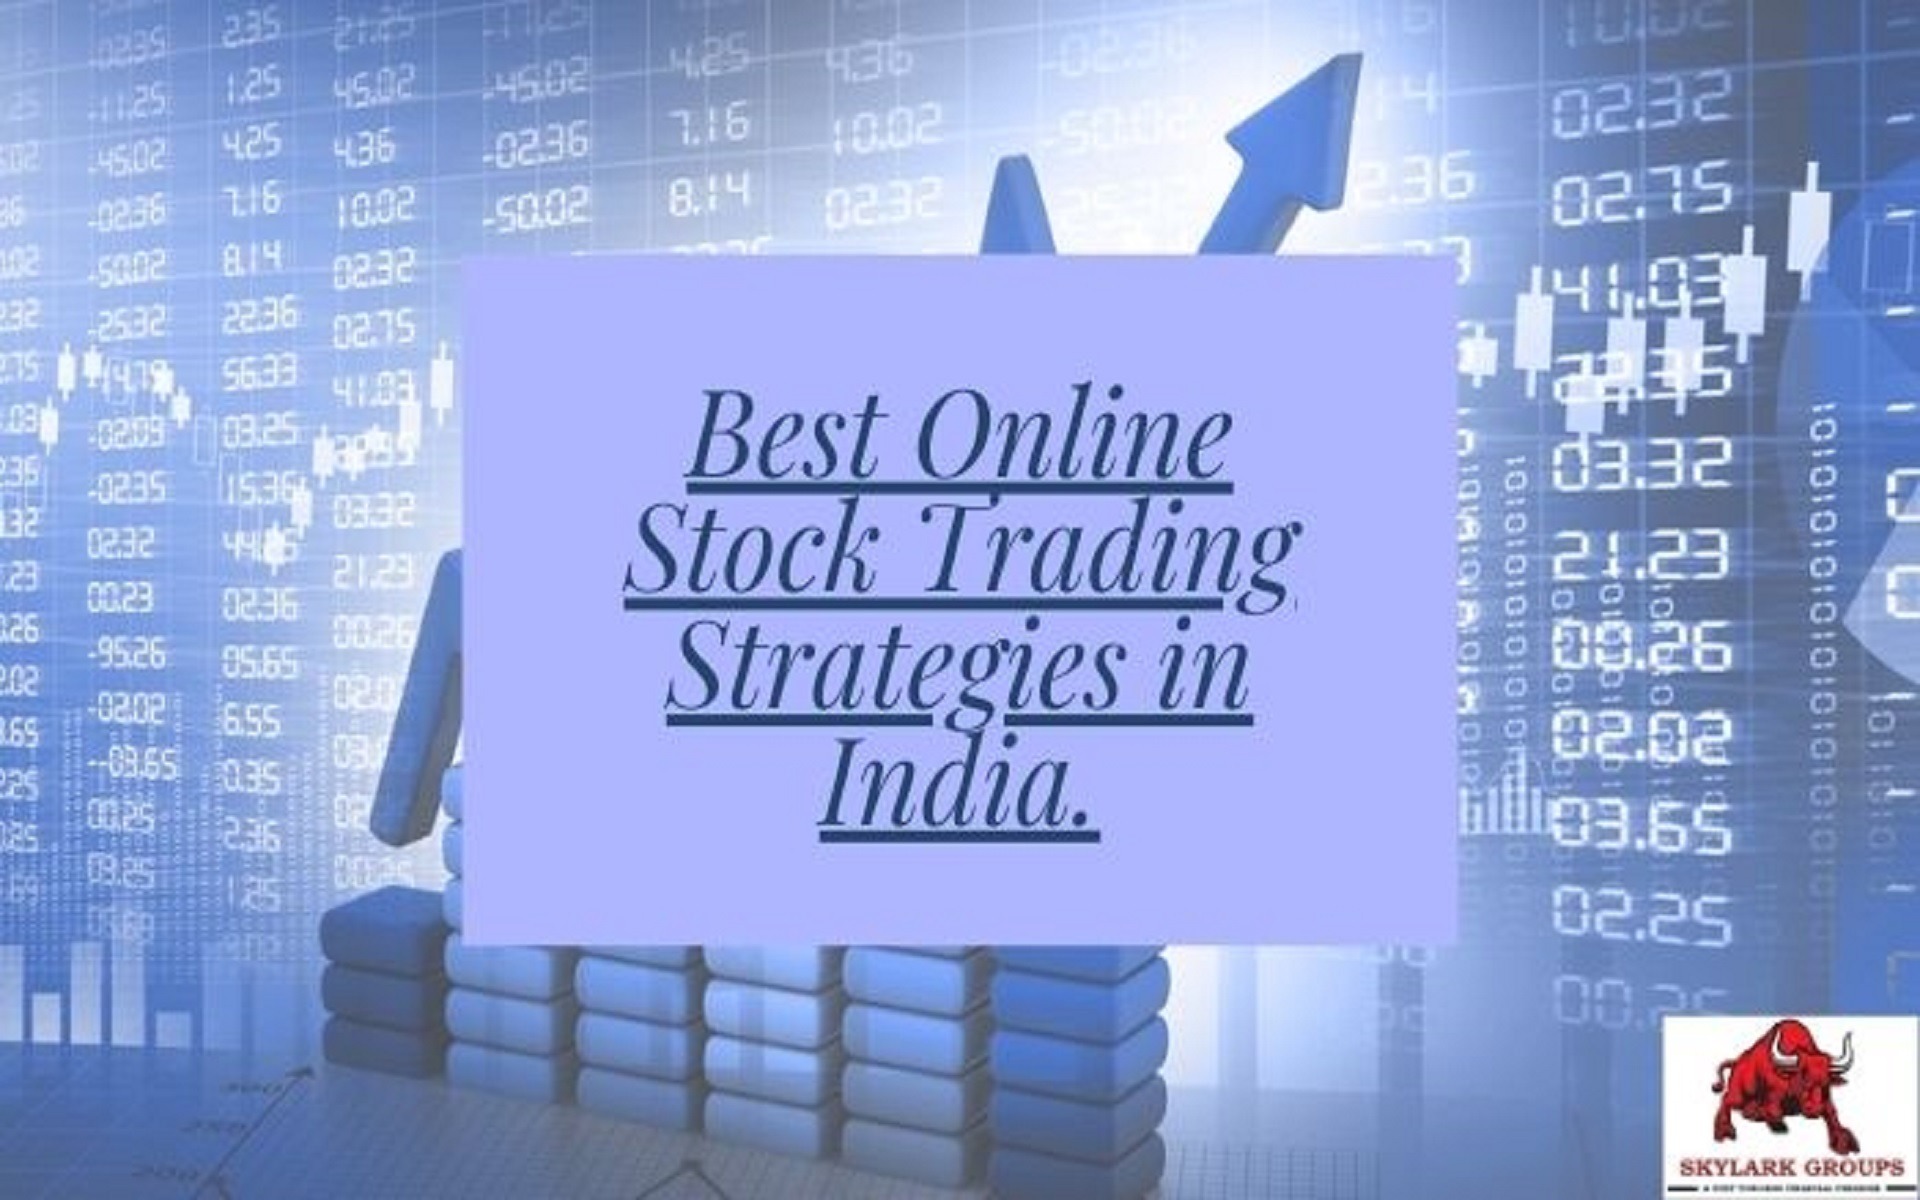 Best Online Stock Trading Strategies in India.